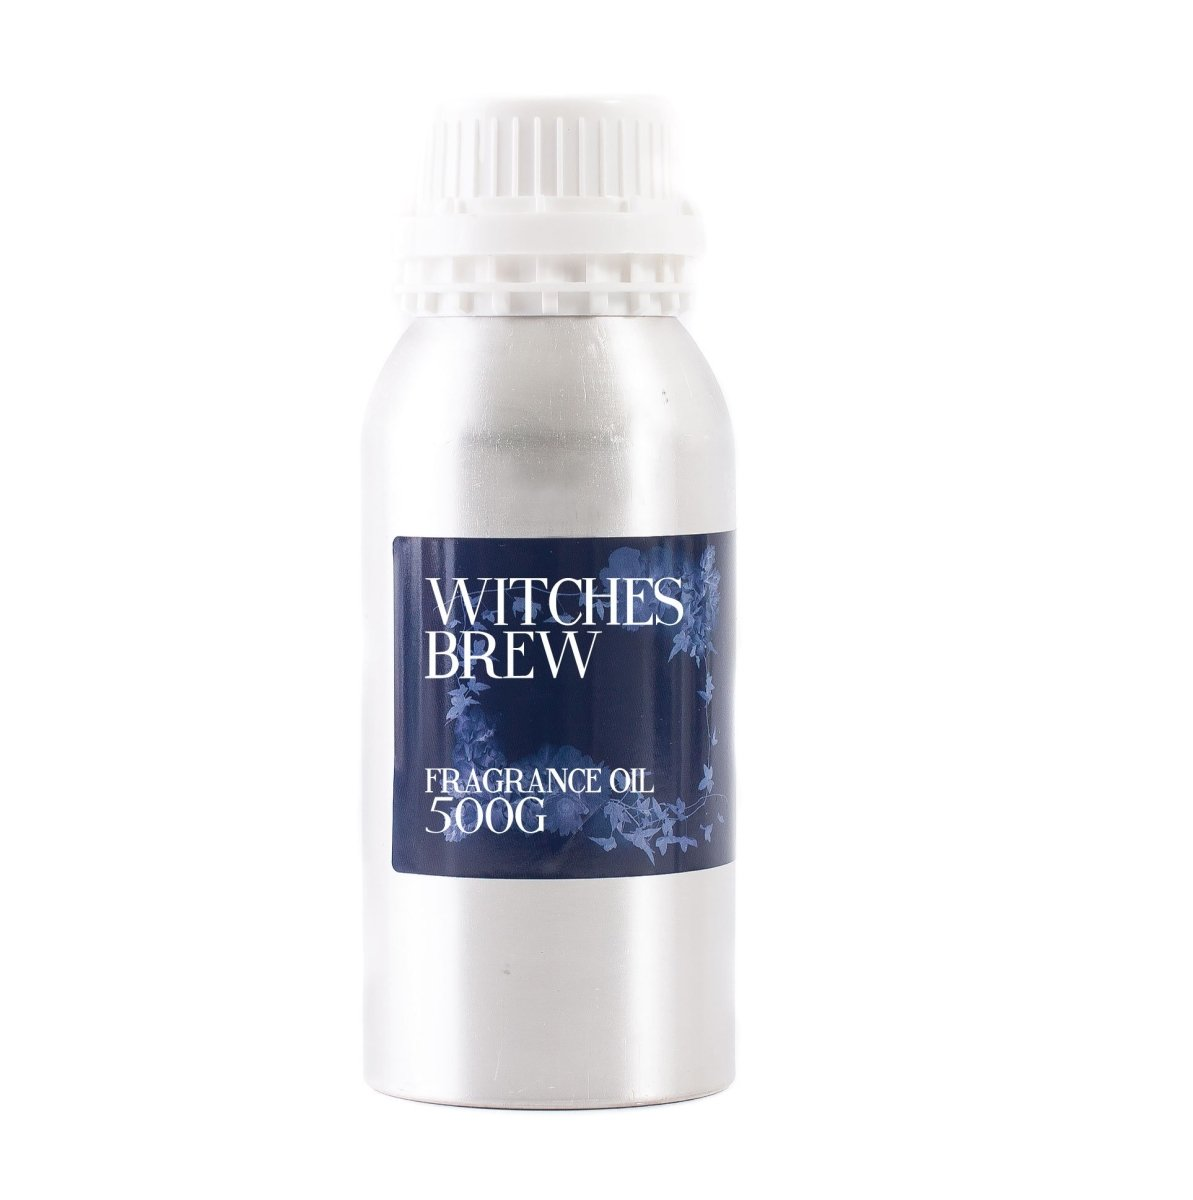 Witches Brew Fragrance Oil - Mystic Moments UK